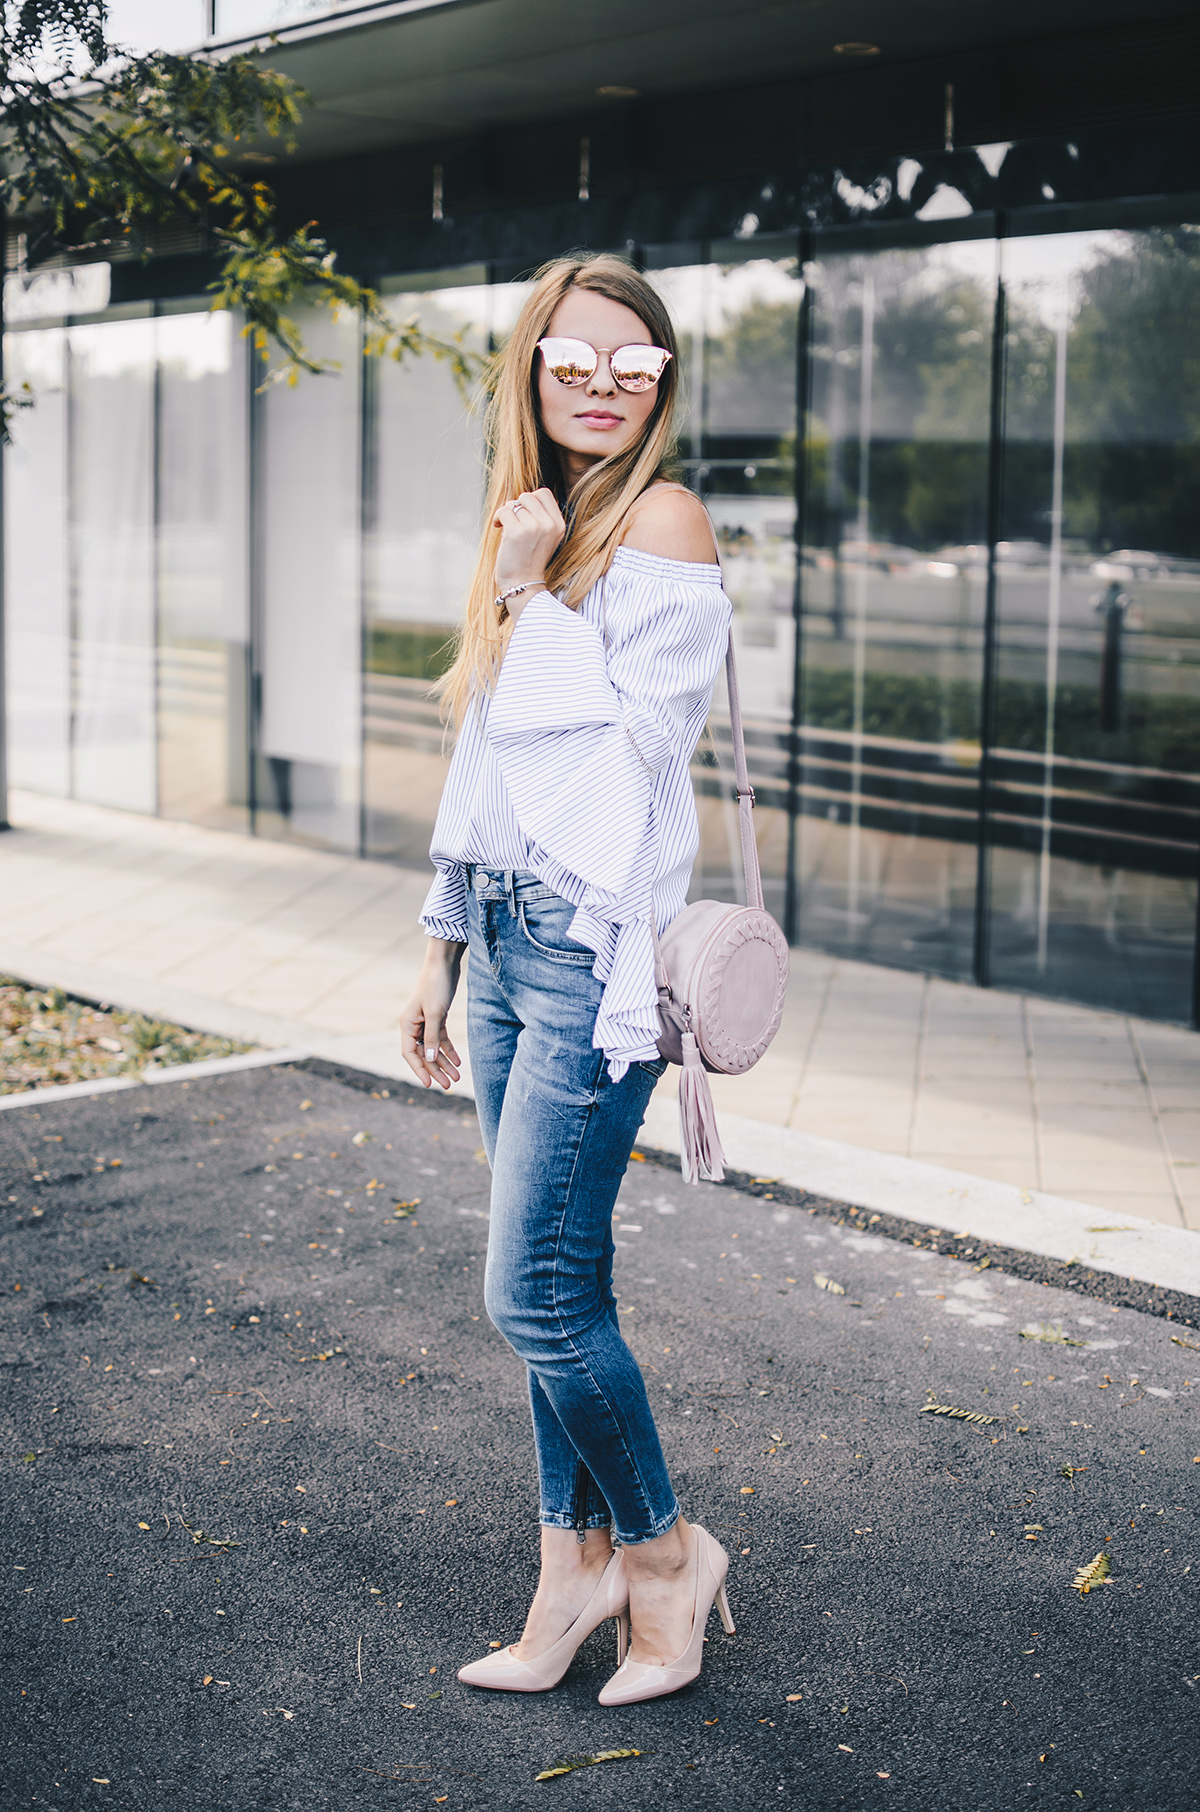 off-shoulder-ruffle-sleeves-zara-jeans-mirroredsunglasses-scarf-3